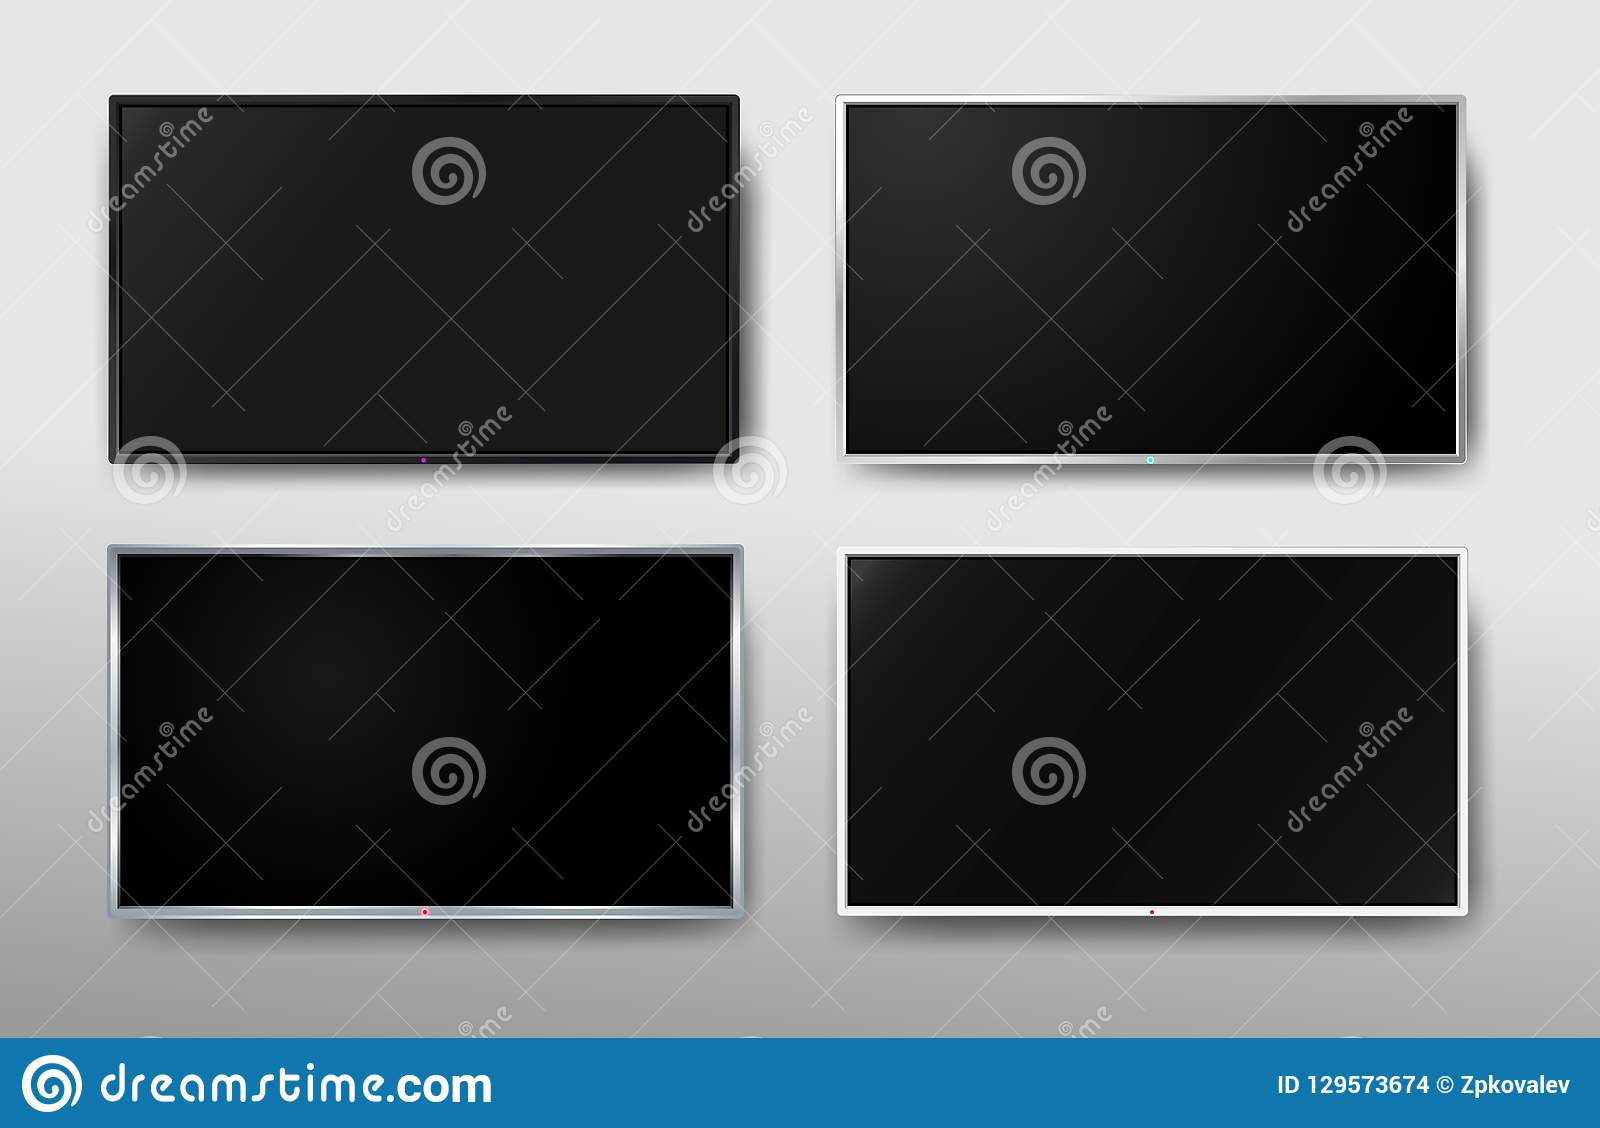 Set of Modern TV screen. Display wide tv. Digital realistic black screen. 4k, LCD or LED tv screen. Vector illustration. Isolated